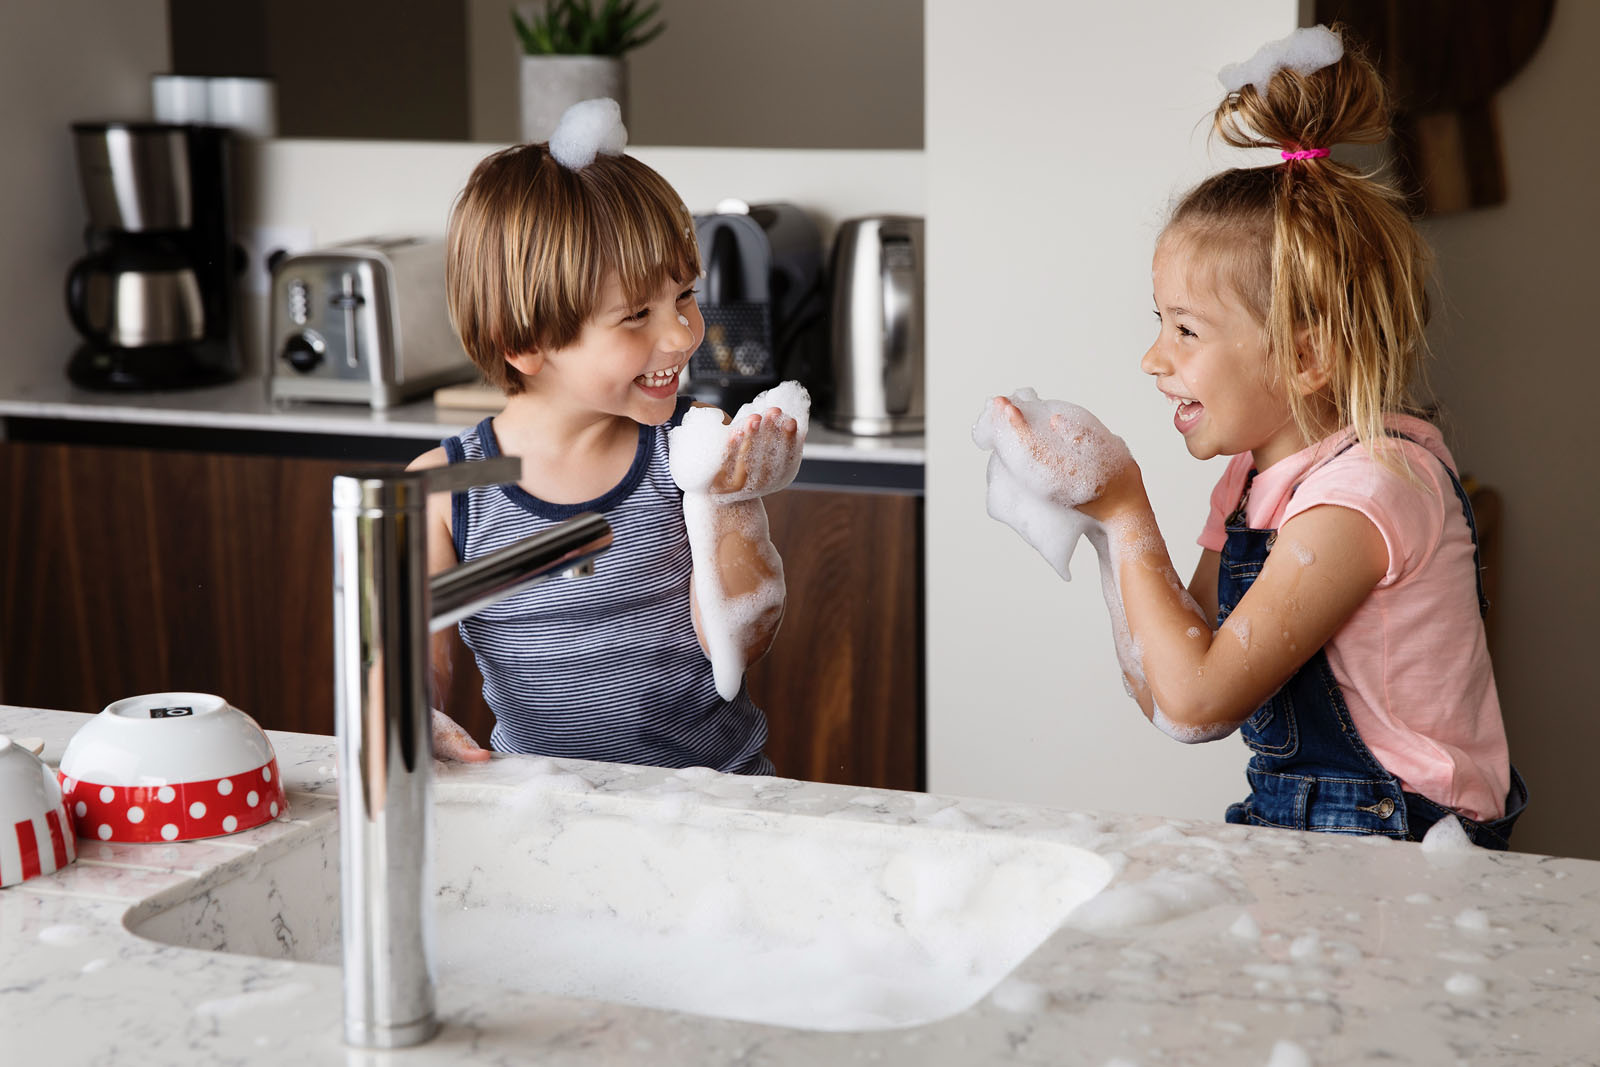 boy-girl-playing-in-sink-with-bubbles-lisa-tichane